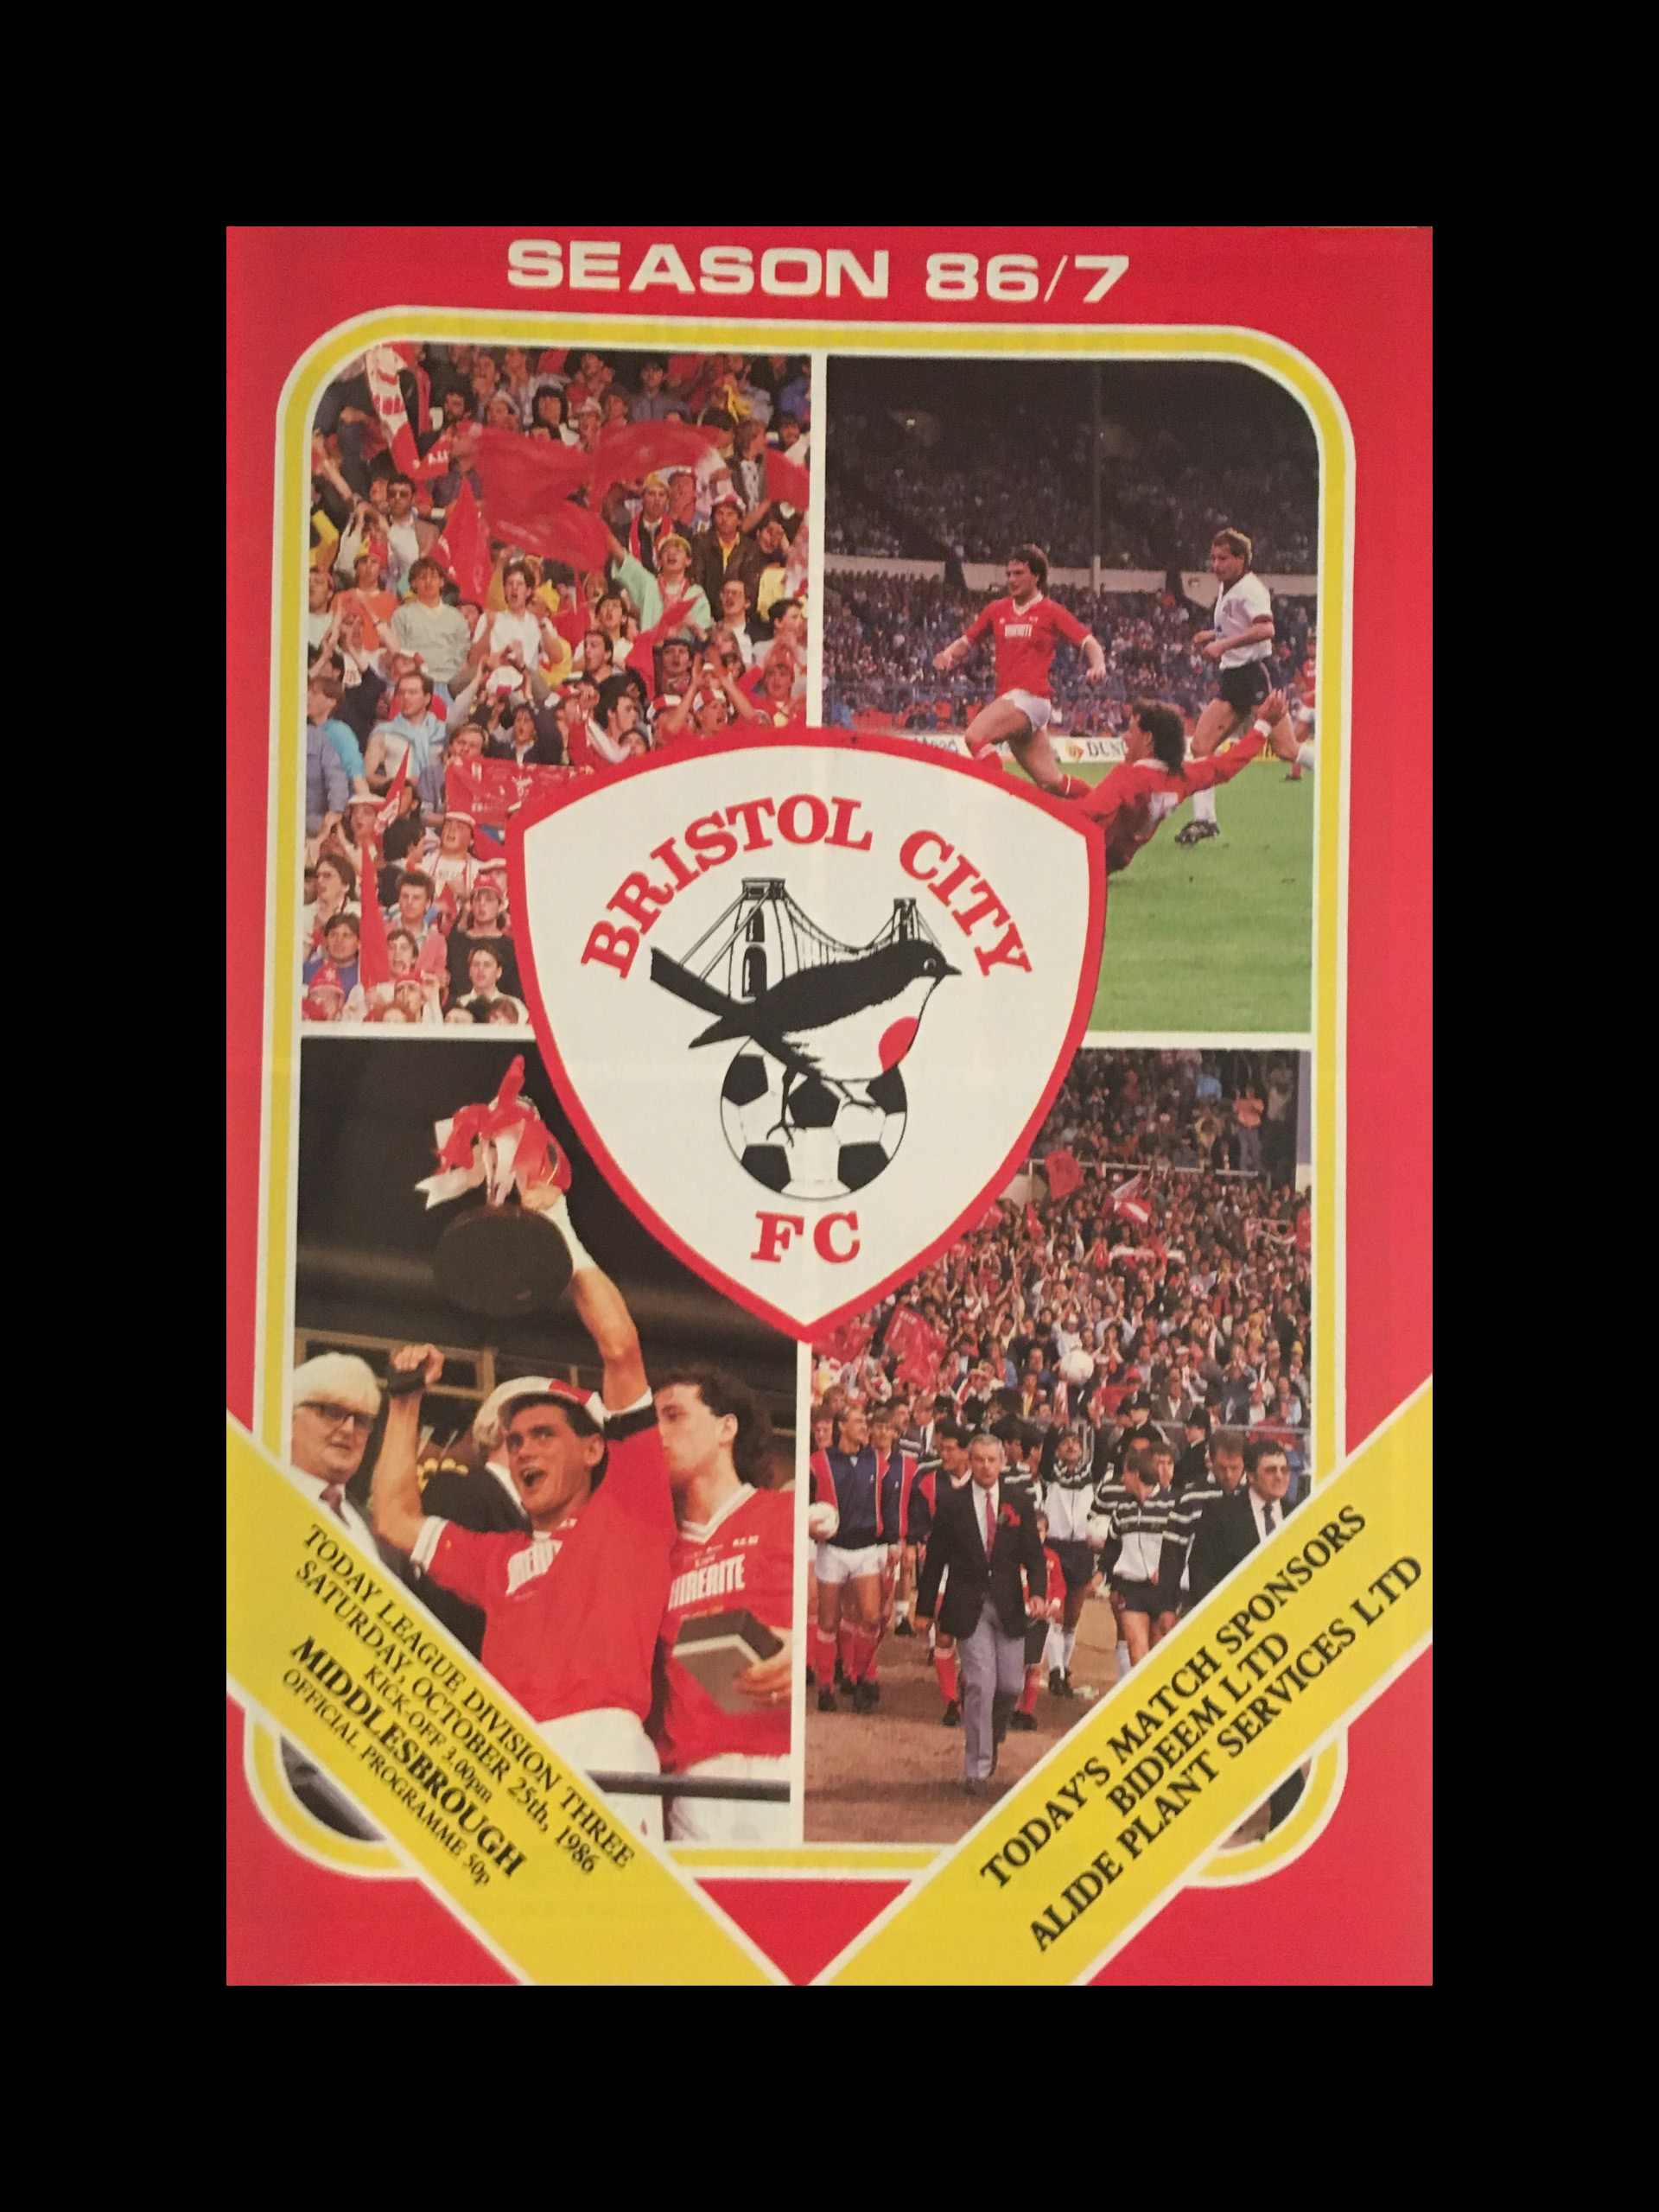 Bristol City v Middlesbrough 25-10-86 Programme